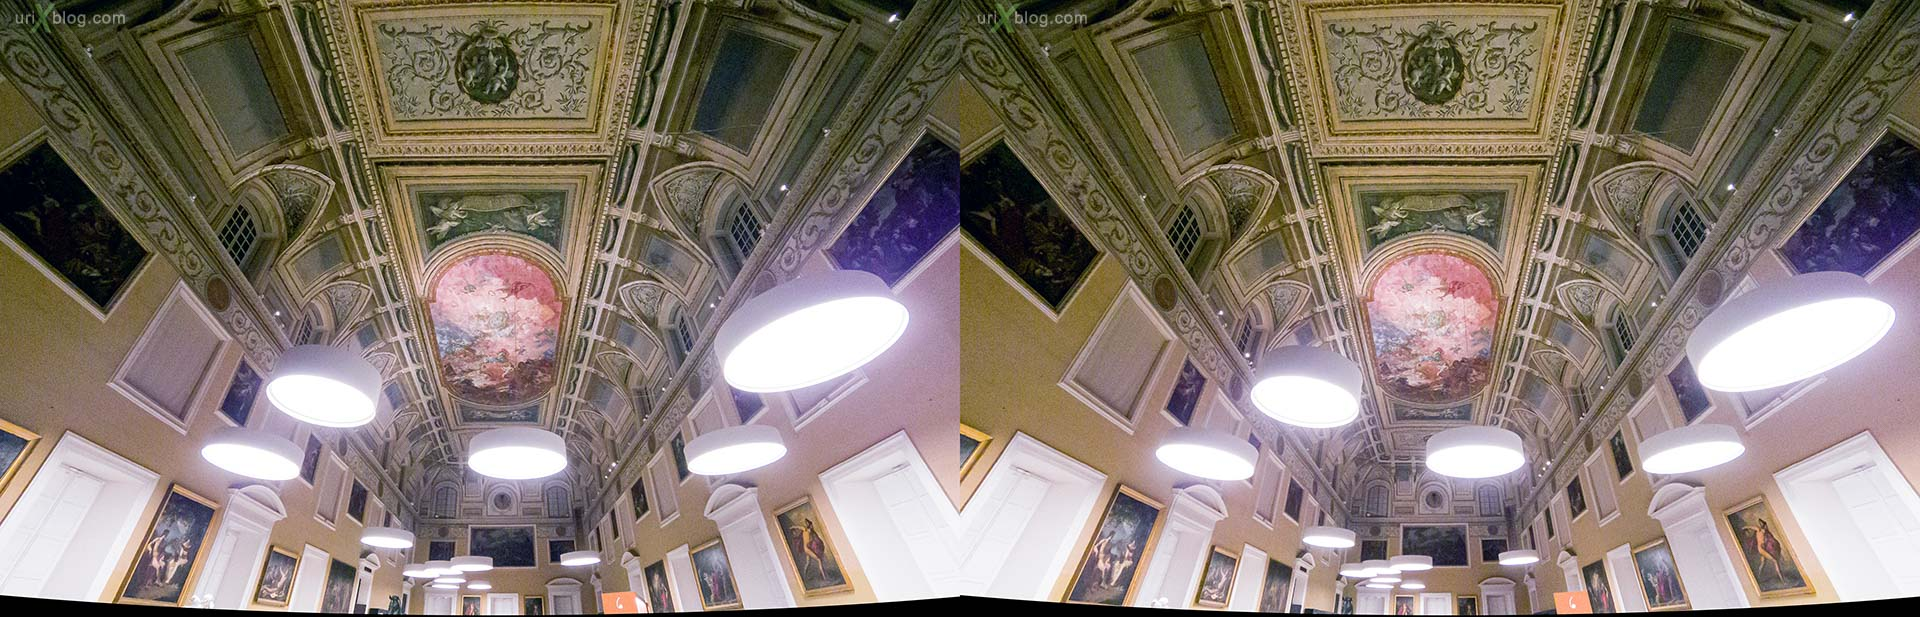 The Hall of the Sundial, ceiling, lamps, painting, National Archaeological Museum of Naples, ancient Rome, Pompei, exhibition, Naples, Italy, 3D, stereo pair, cross-eyed, crossview, cross view stereo pair, stereoscopic